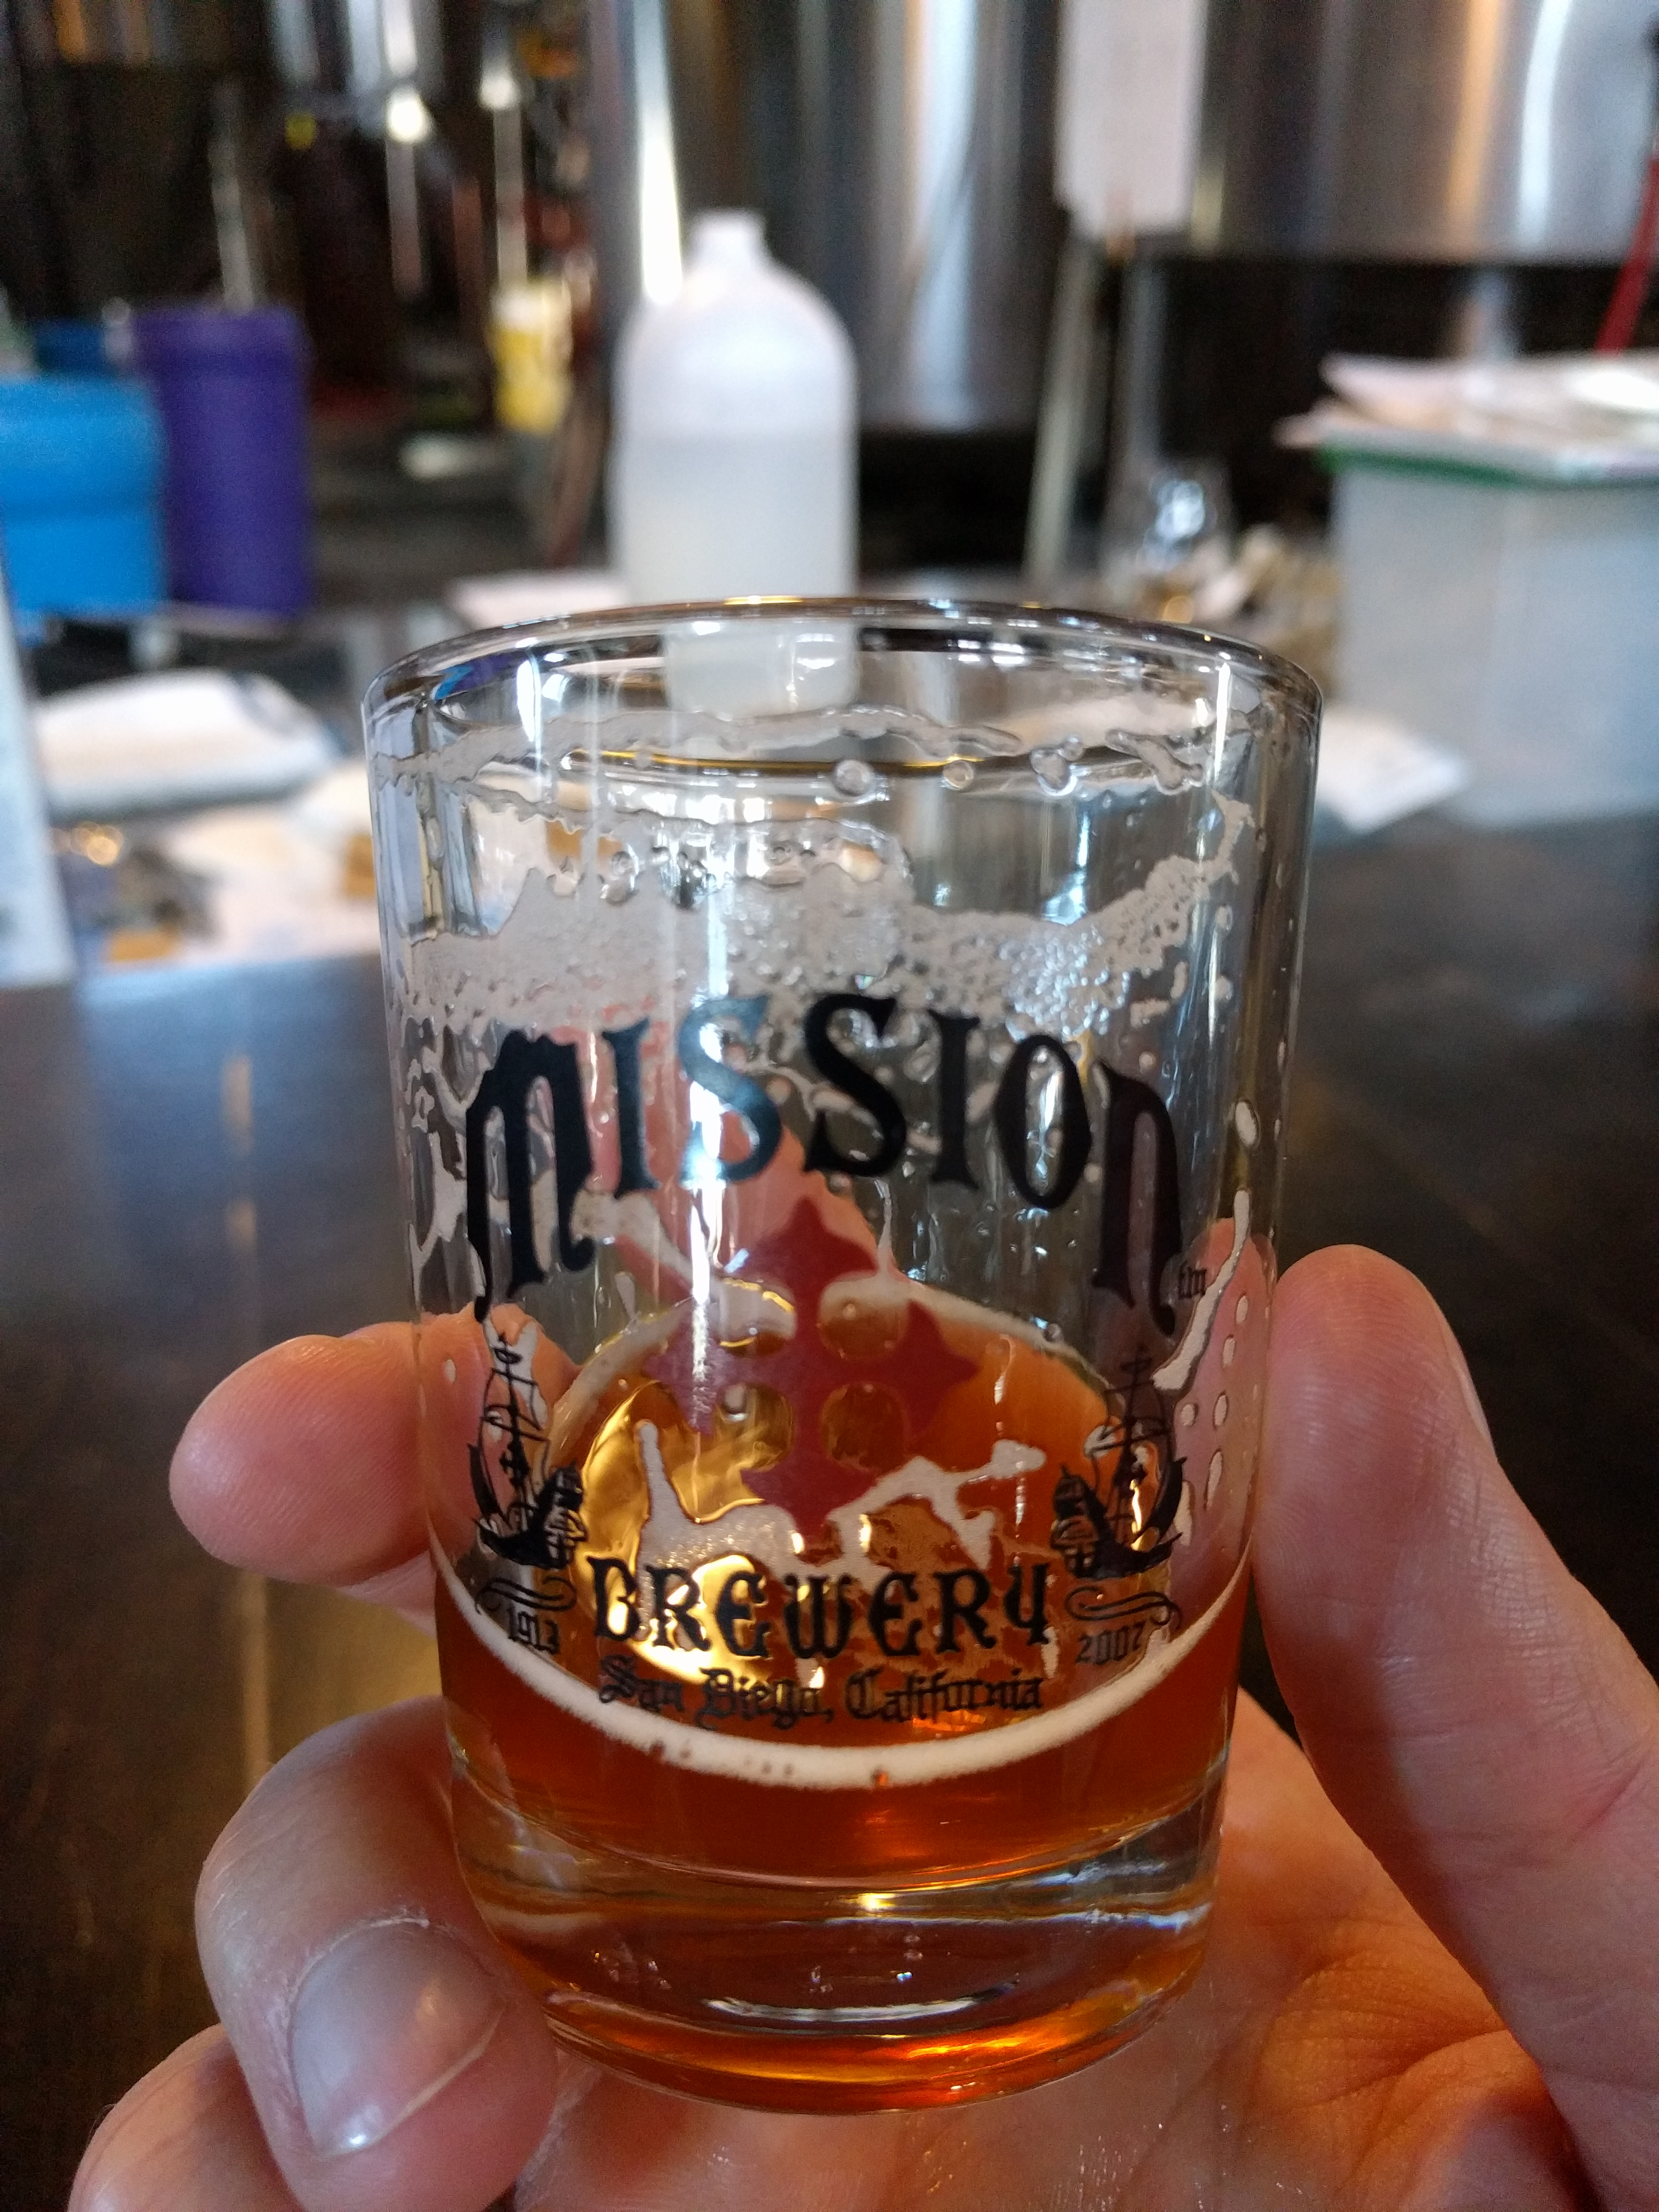 A taster in Mission Brewery San Diego